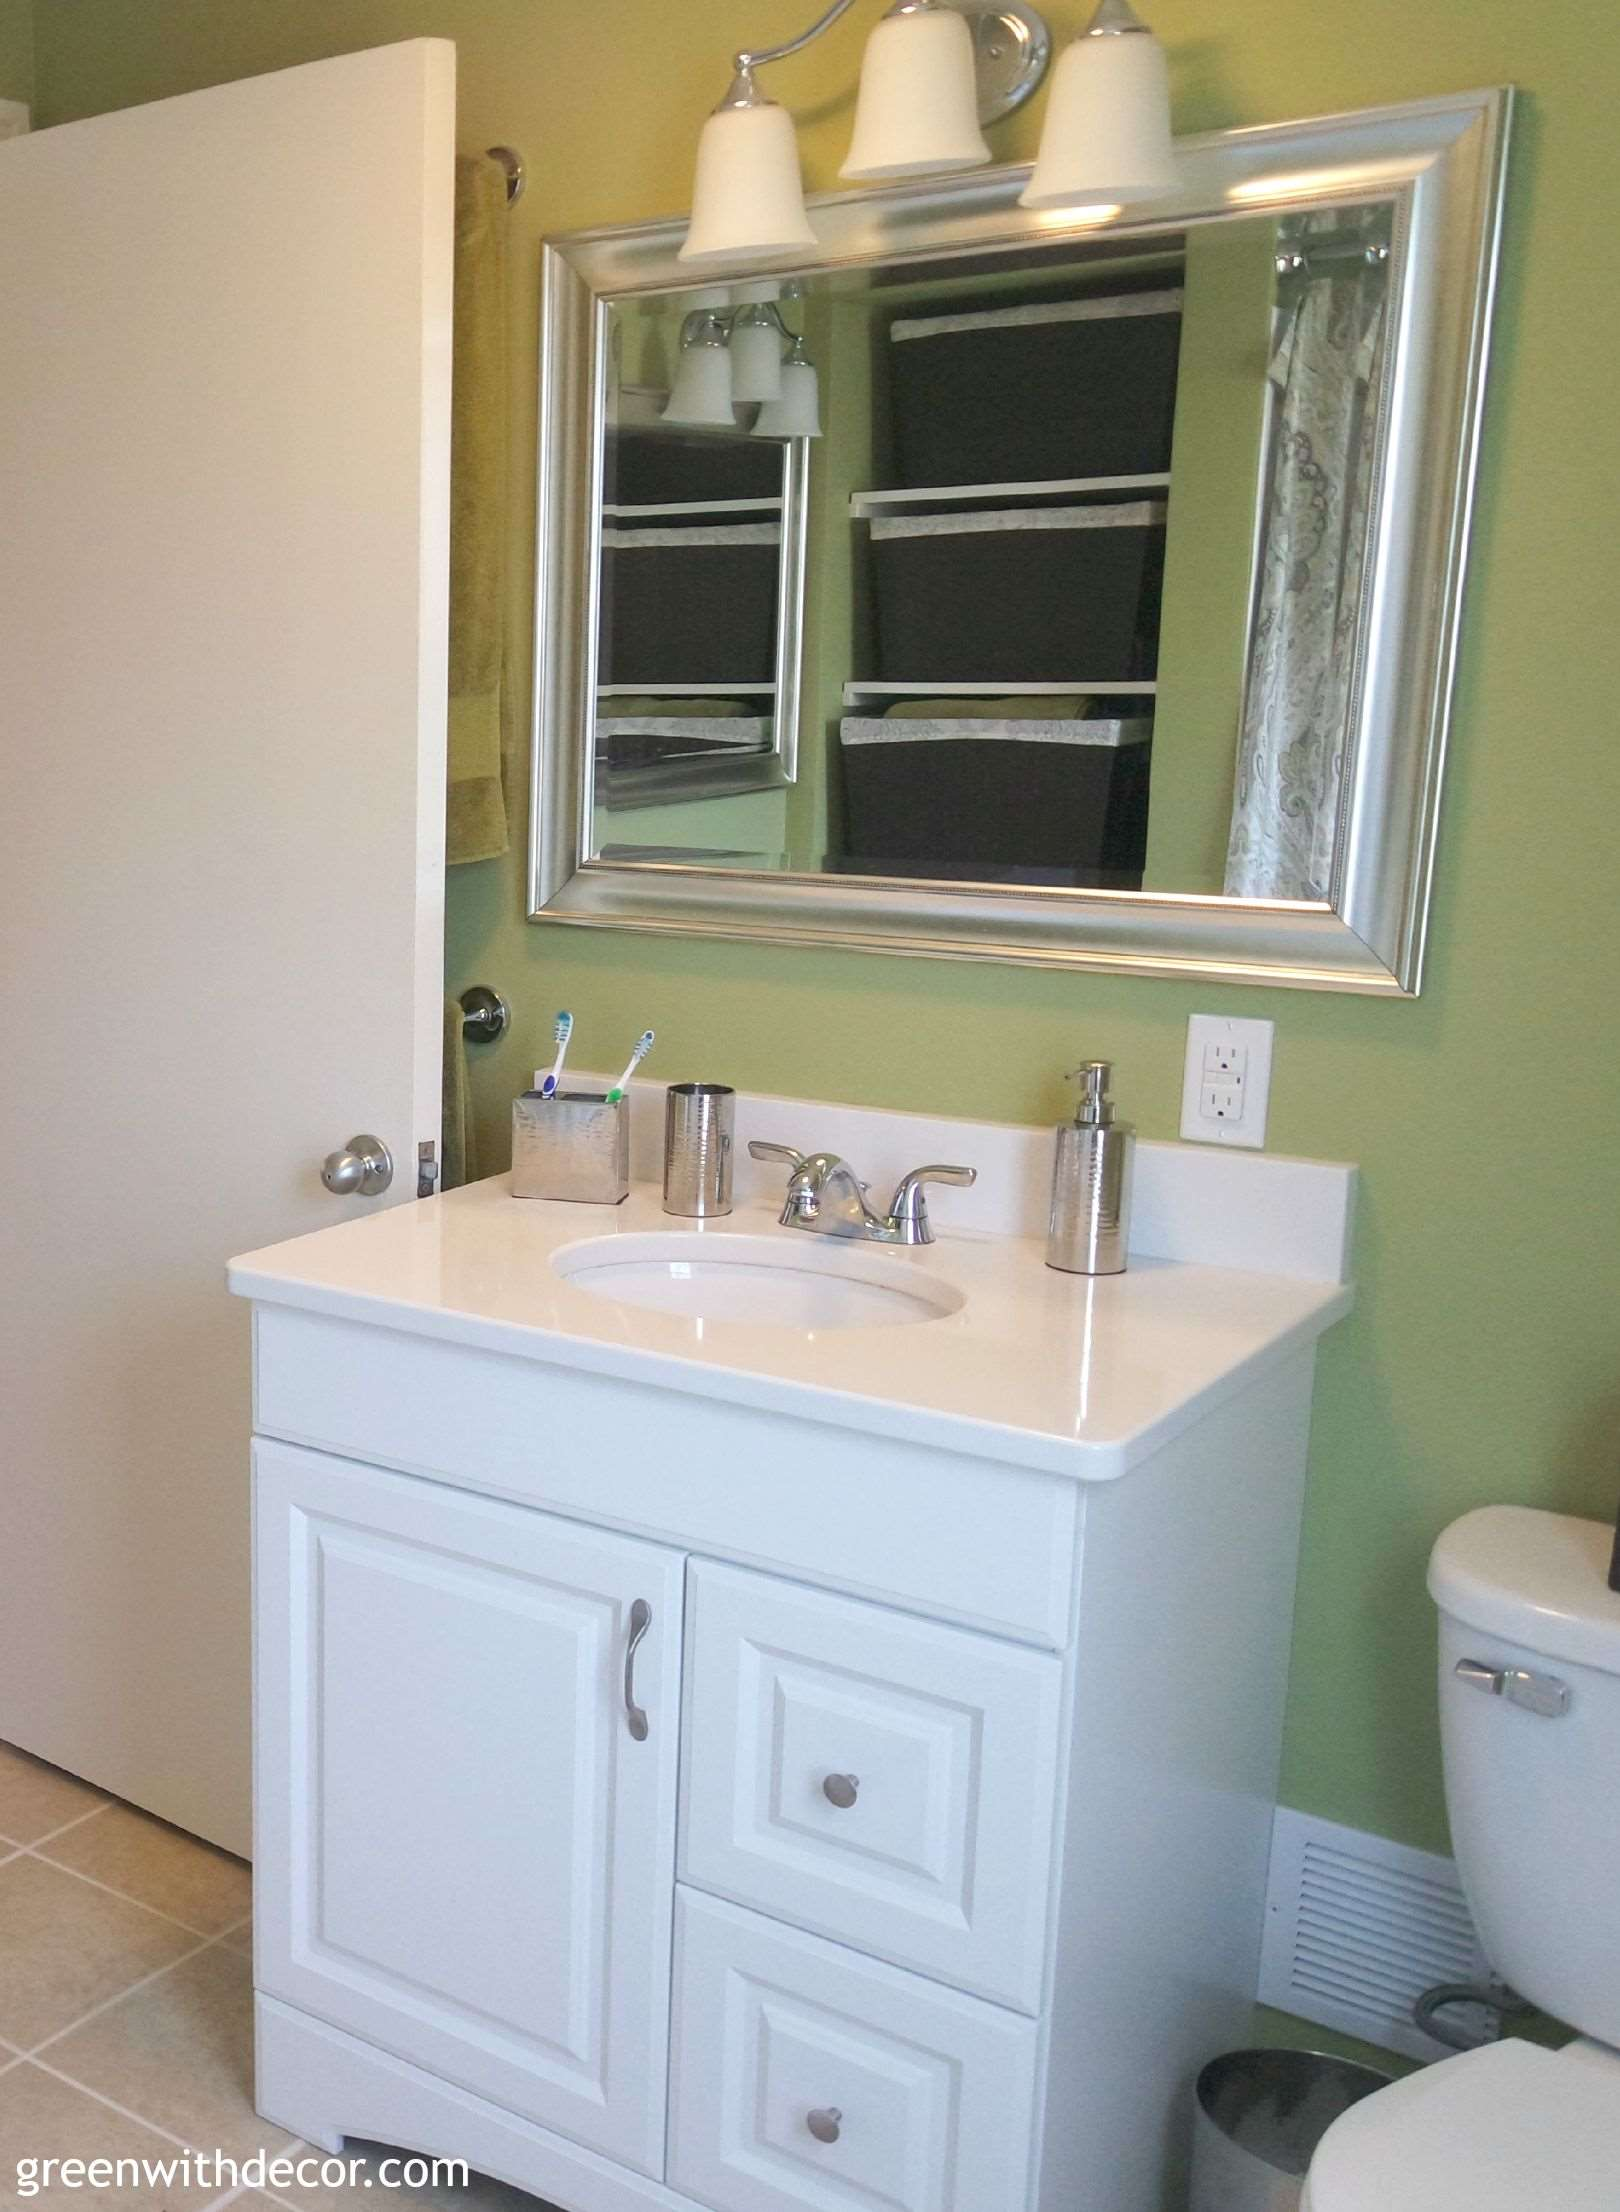 Buying Bathroom Vanities Green With Decor